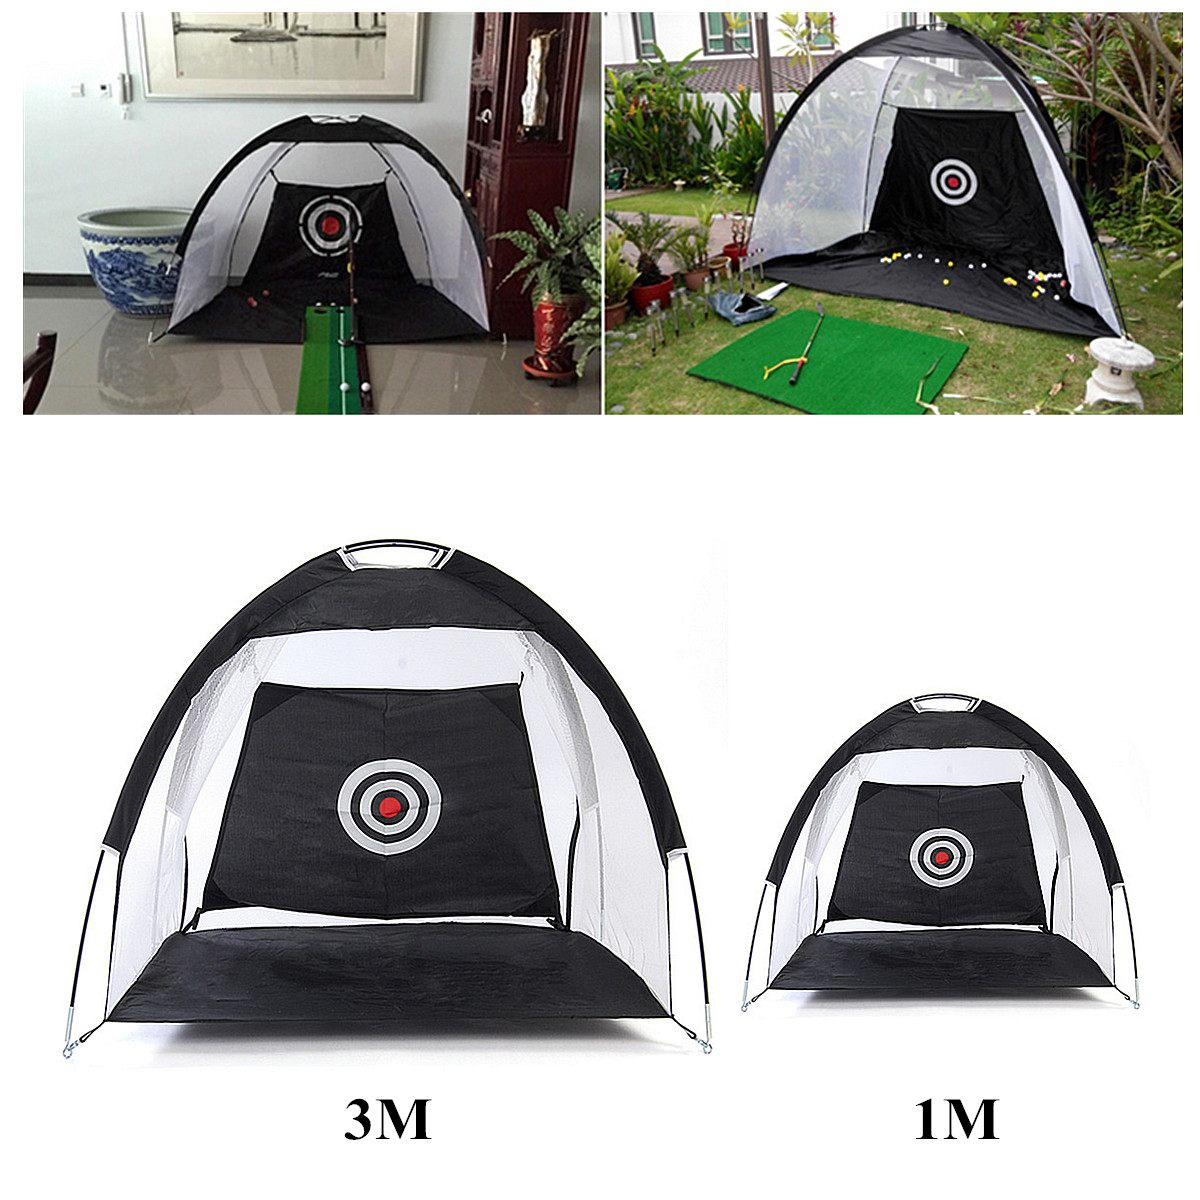 3m/1m Black Foldable Golf Hitting Cage Practice Net Trainer 210D Encryption Oxford Cloth+Polyester Durable sturdy construction